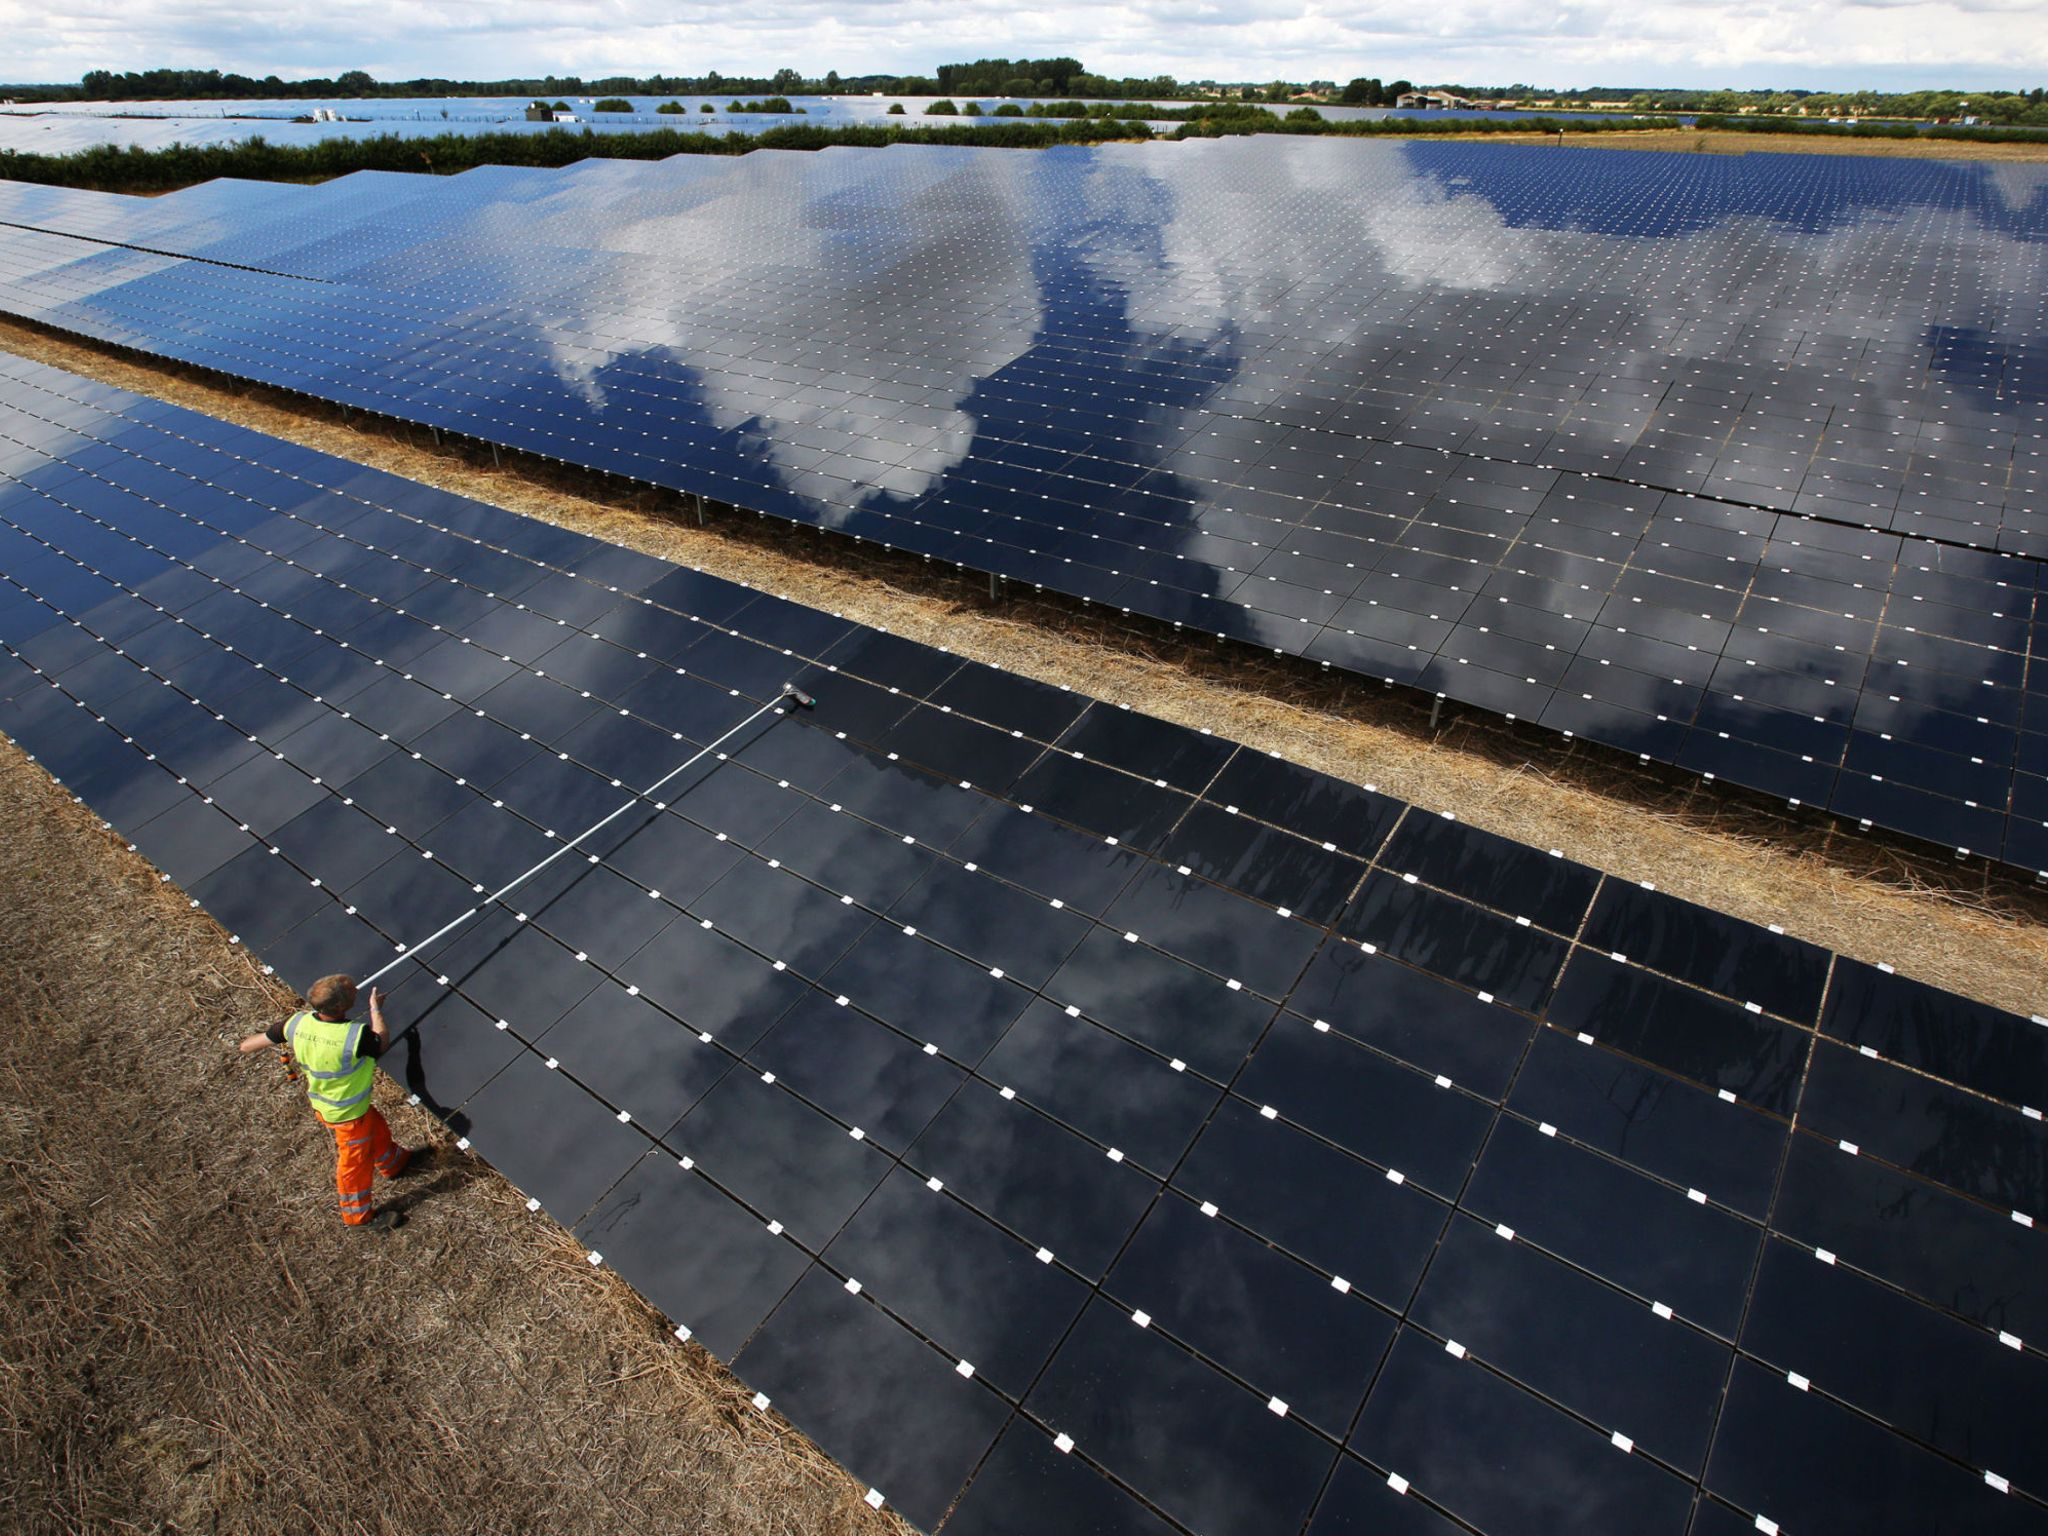 Going green: UK sets renewable energy records